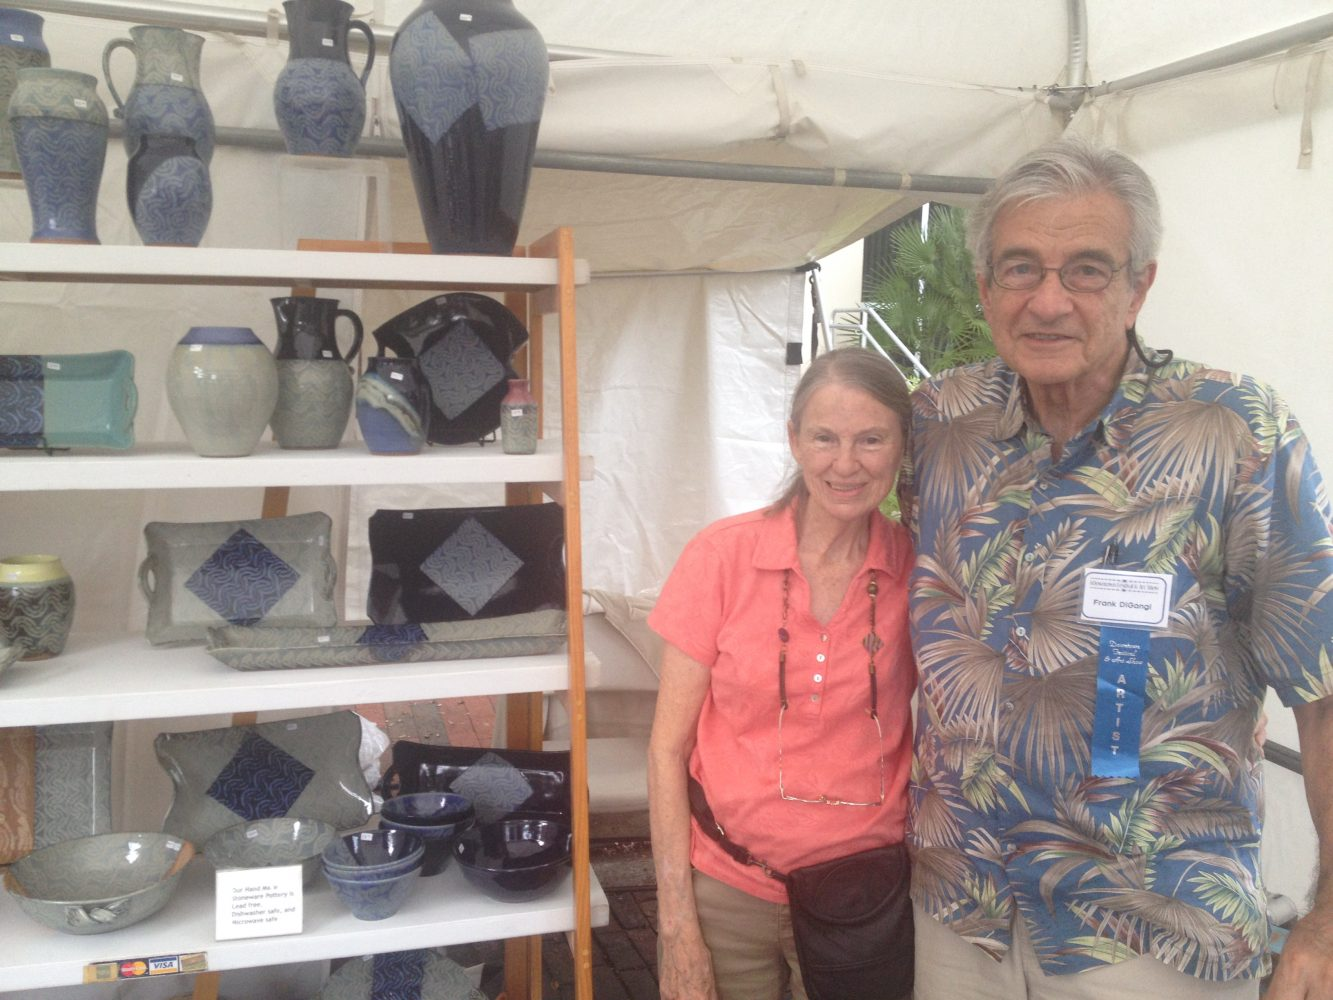 Artist Frank DiGangi poses with his wife and his pottery.